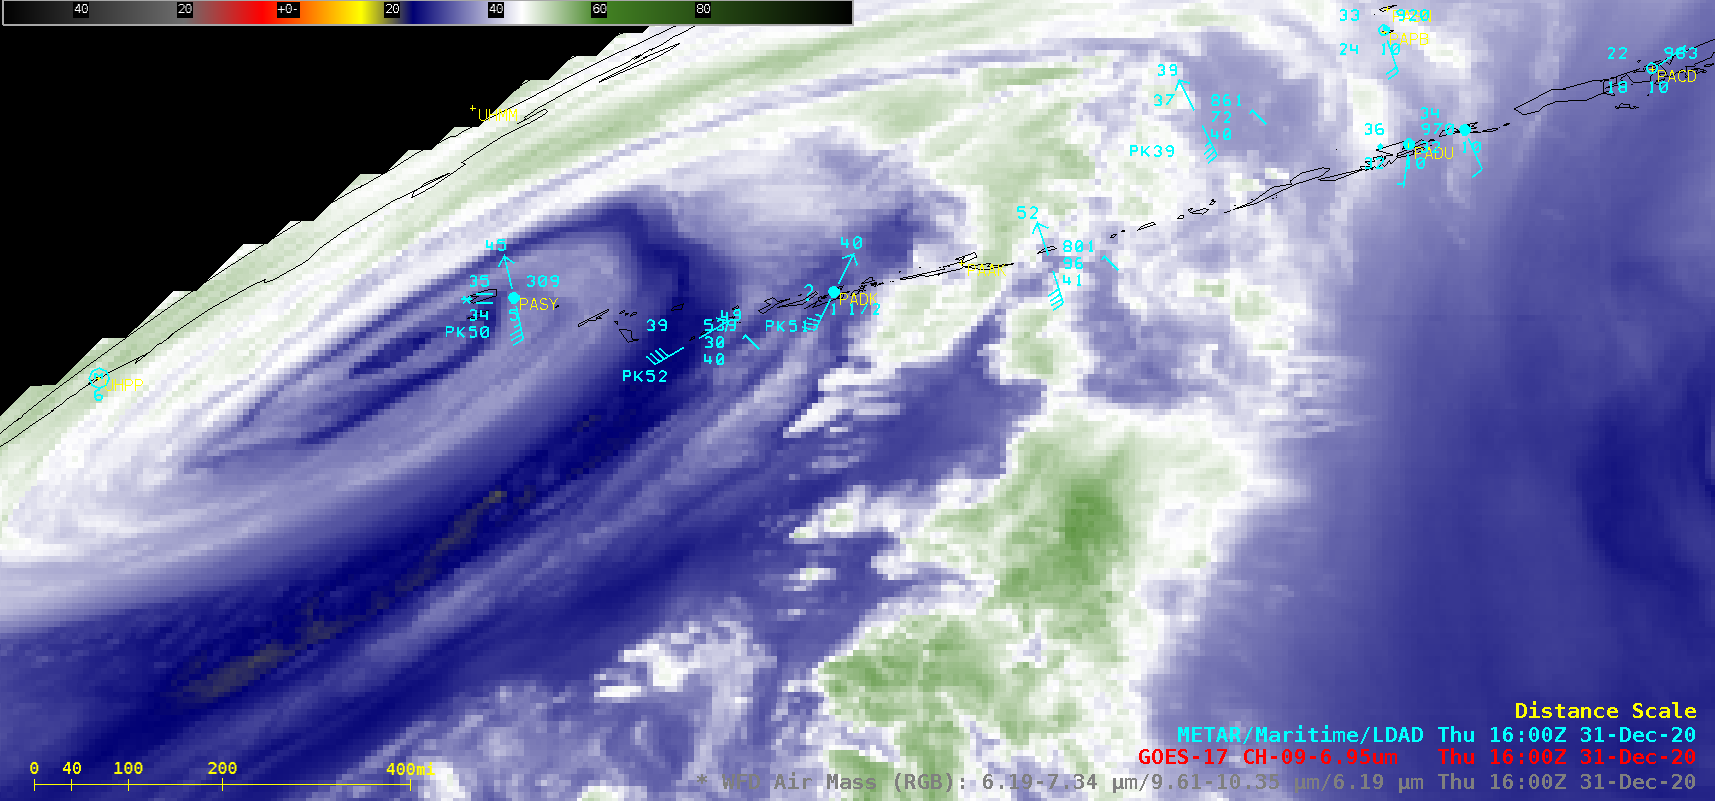 GOES-17 Air Mass RGB and Mid-level Water Vapor (6.9 µm) images [click to play animation   MP4]